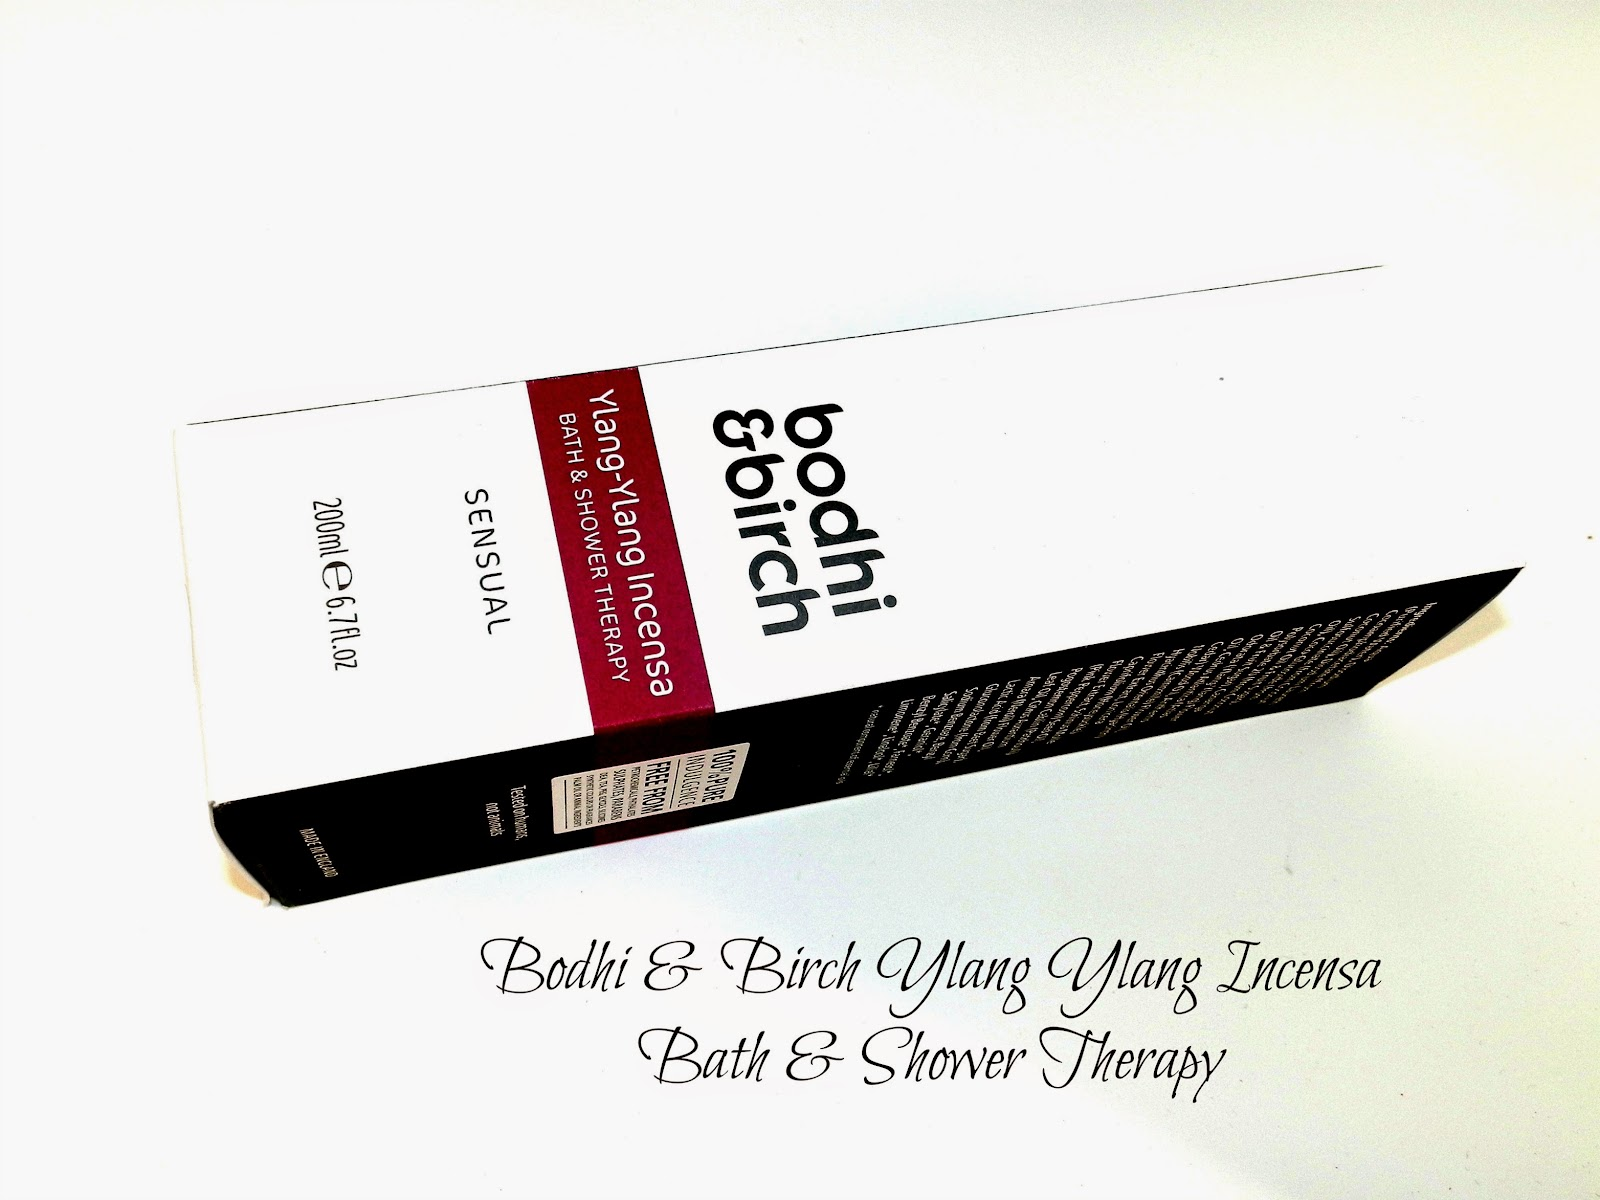 Bodhi & Birch Ylang Ylang Incensa Bath & Shower Therapy Reviews